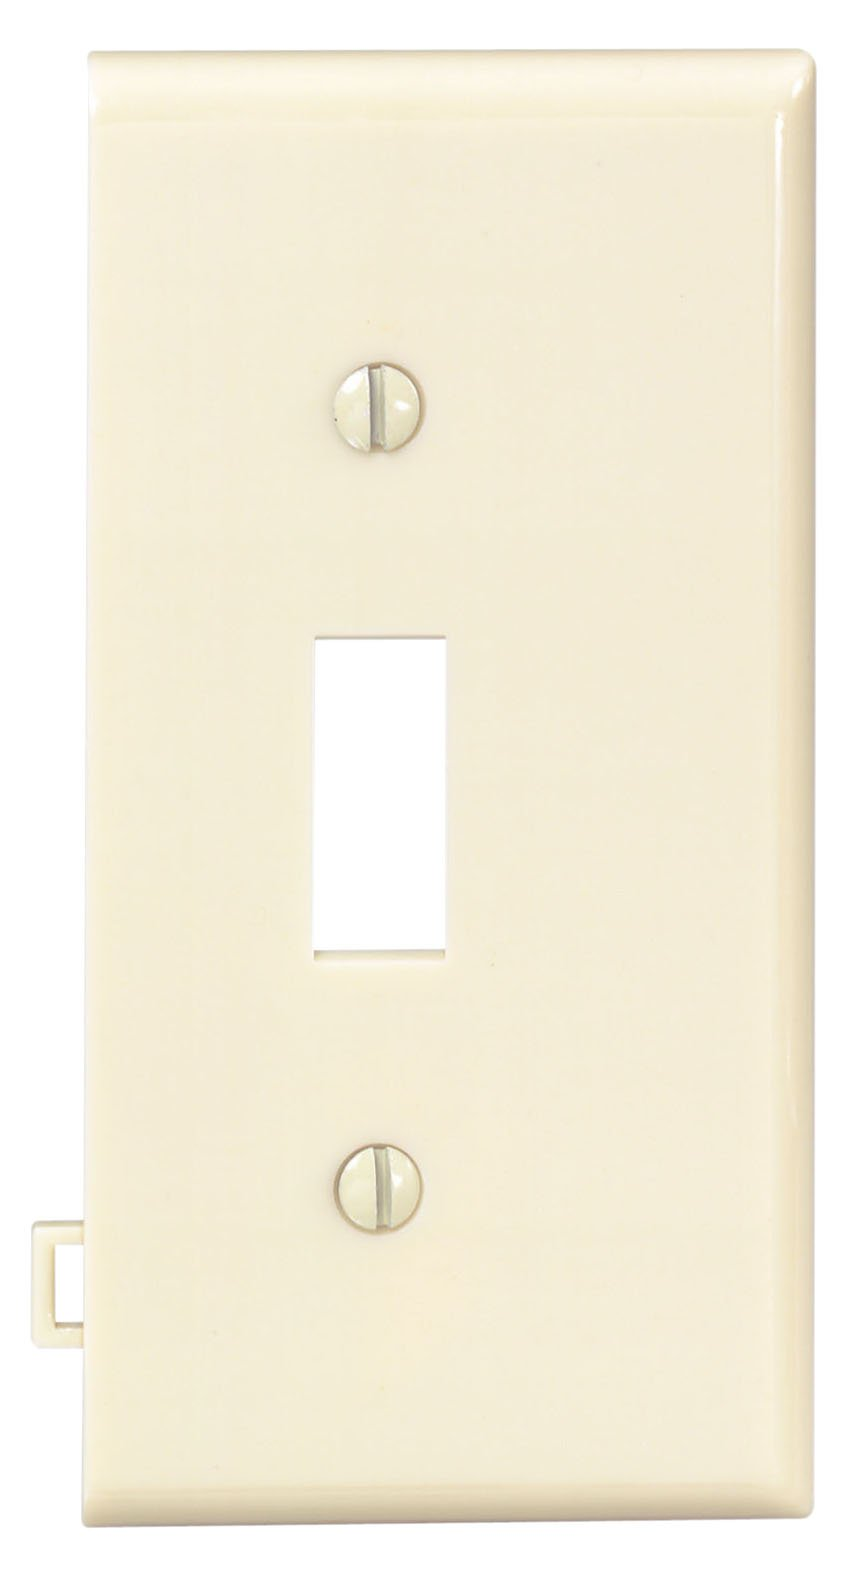 Leviton PSE1-I 1-Gang Toggle Device Switch Wallplate, Sectional, Thermoplastic Nylon, End Panel, Ivory